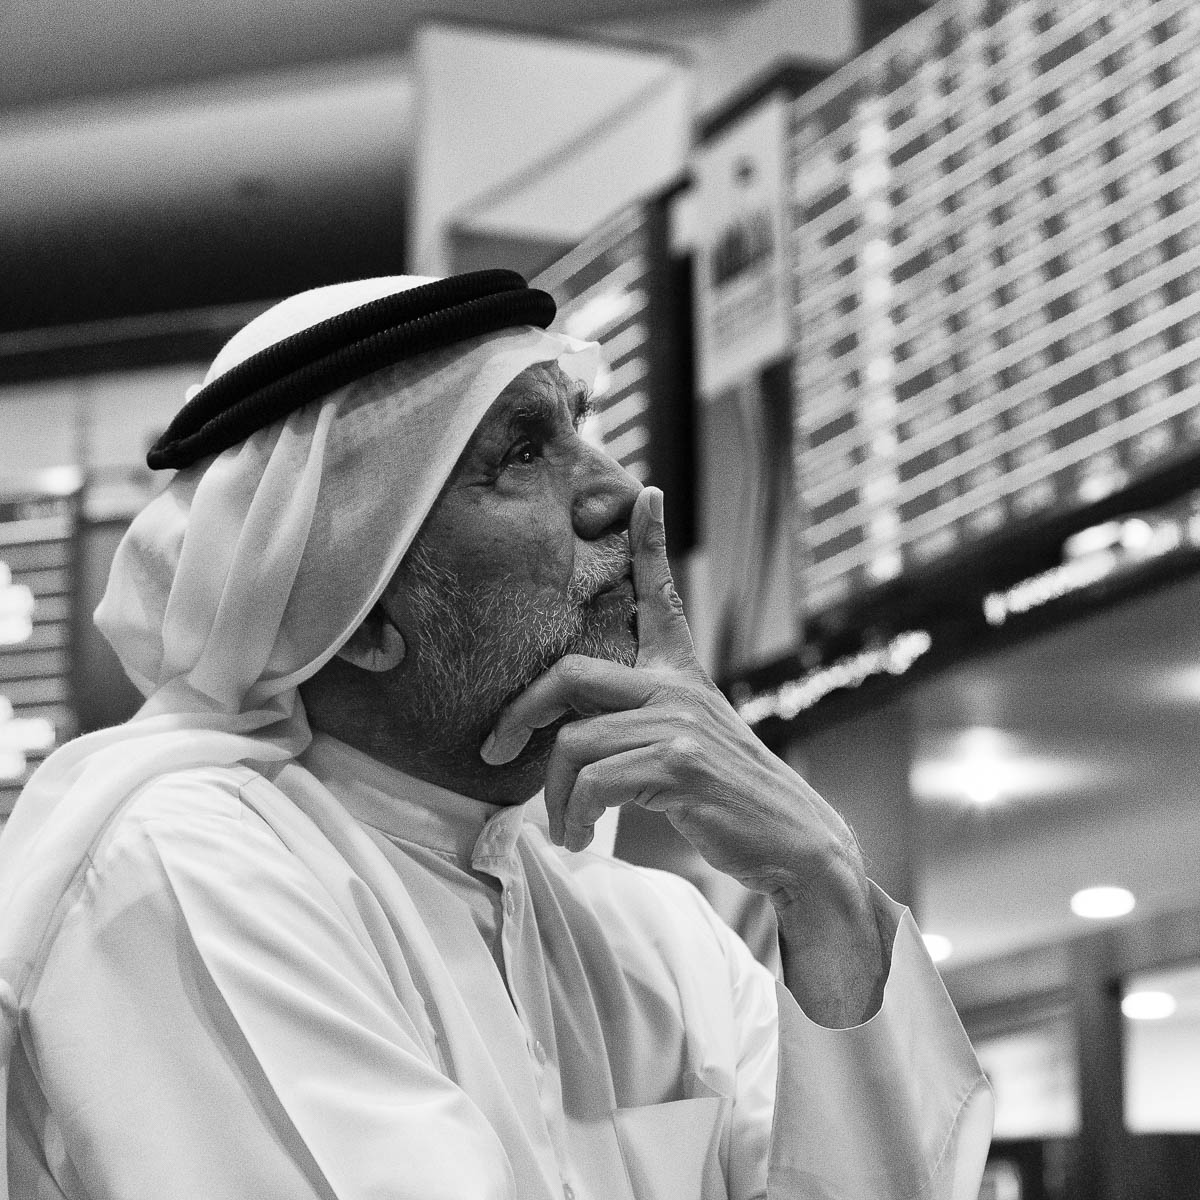 A local trader watches the prices of stocks during a time of market instability at the Dubai Stock Exchange